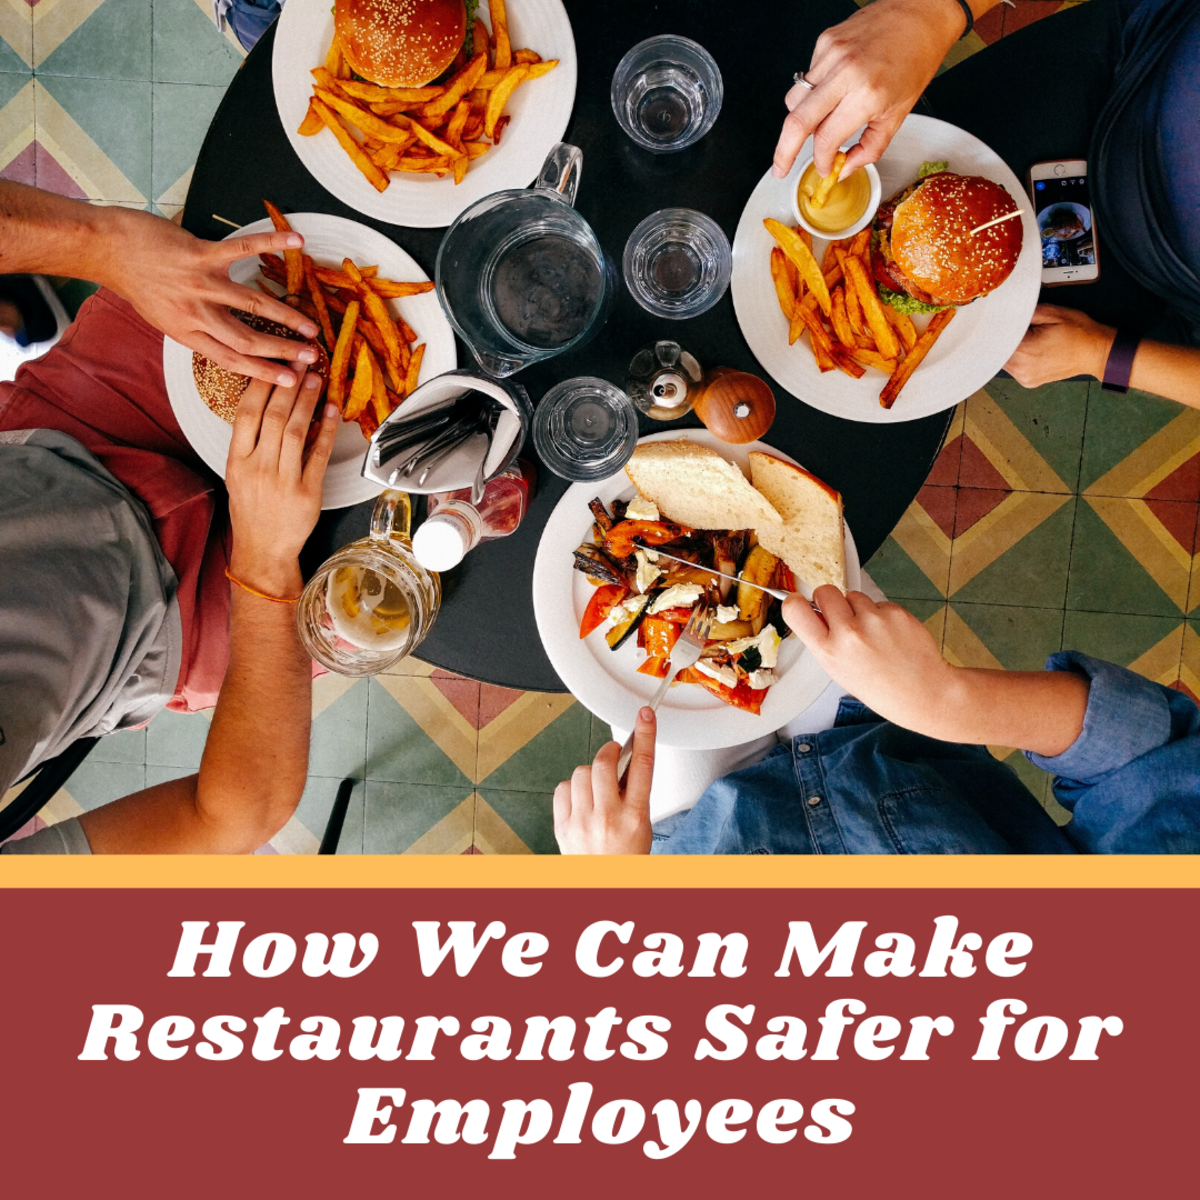 How We Can Make Restaurants Safer for Employees